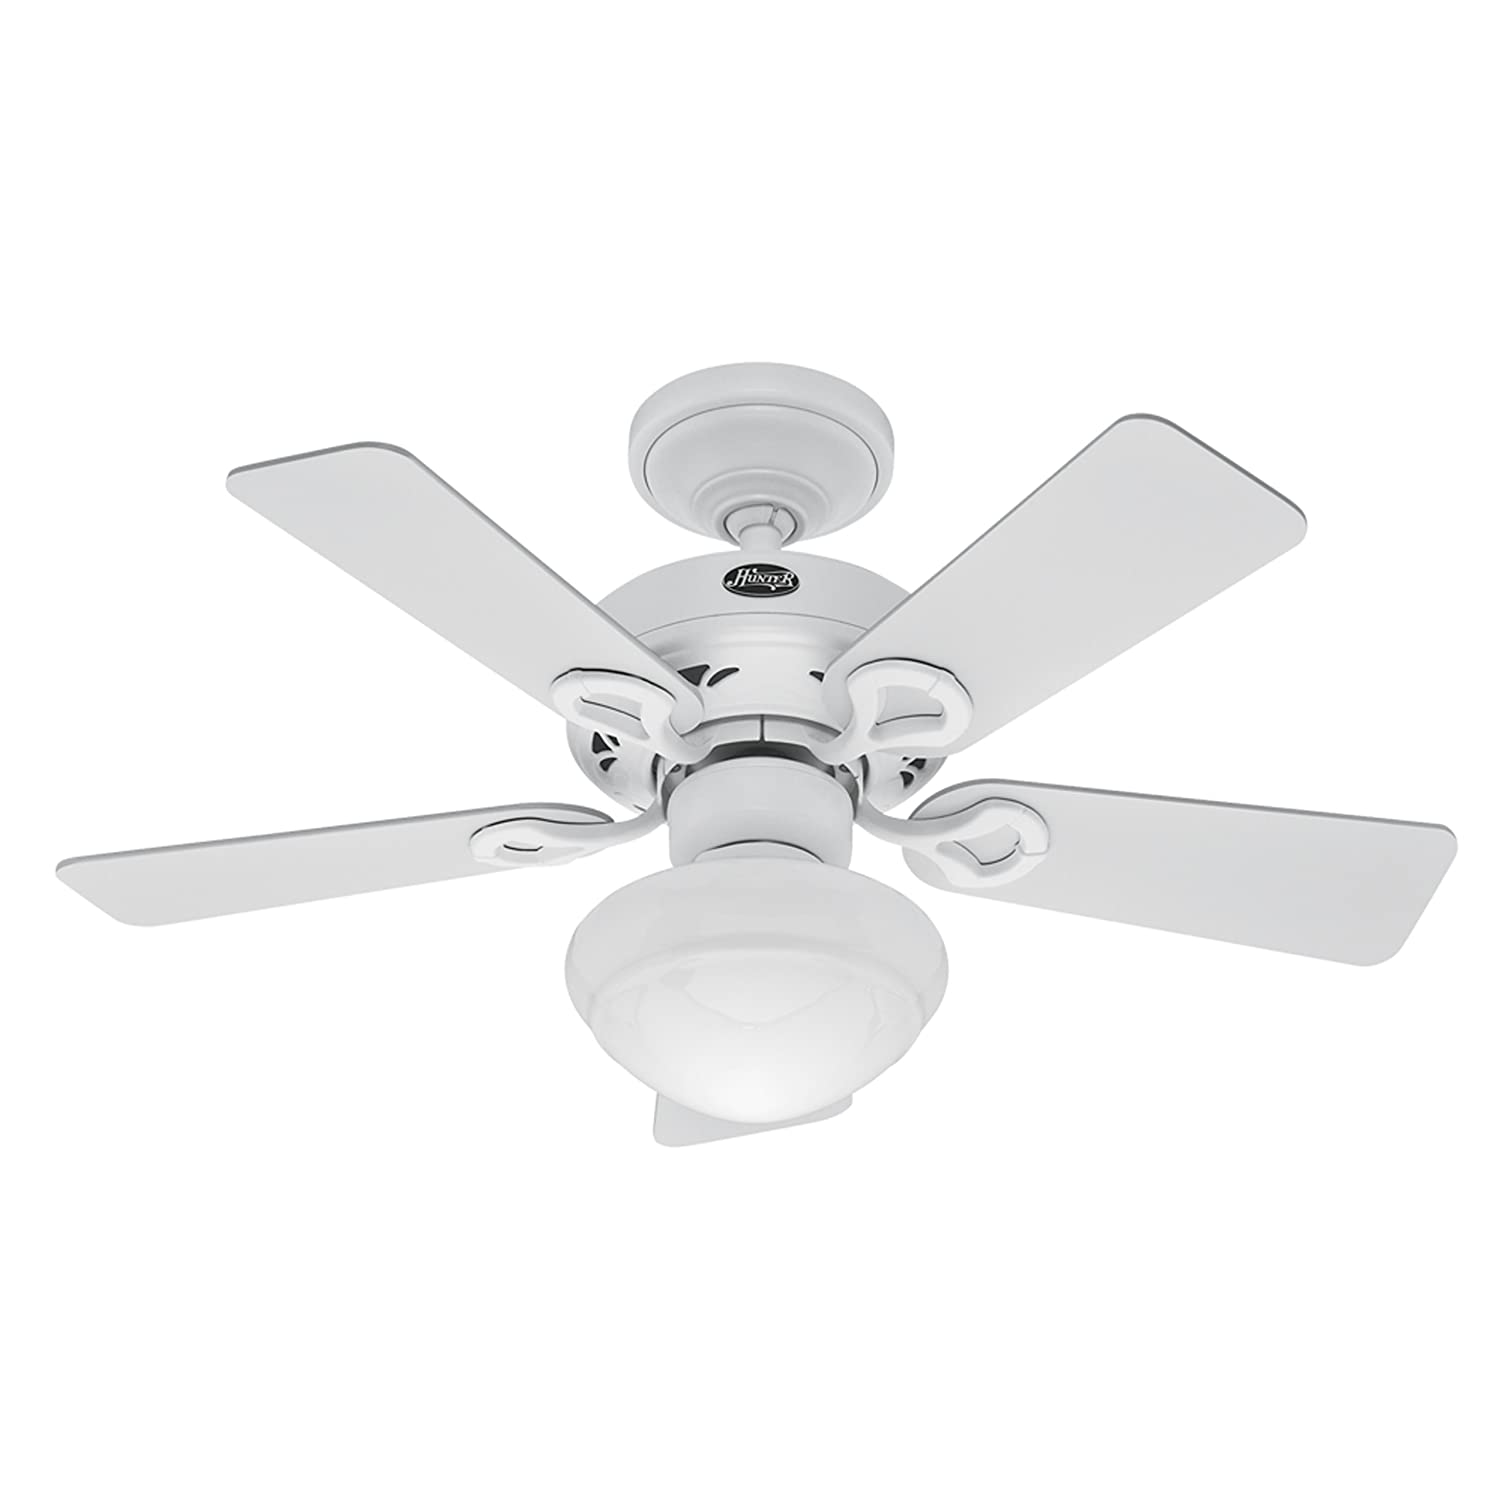 Hunter Bainbridge 36 Inch 5 Blade Ceiling Fan with Optional